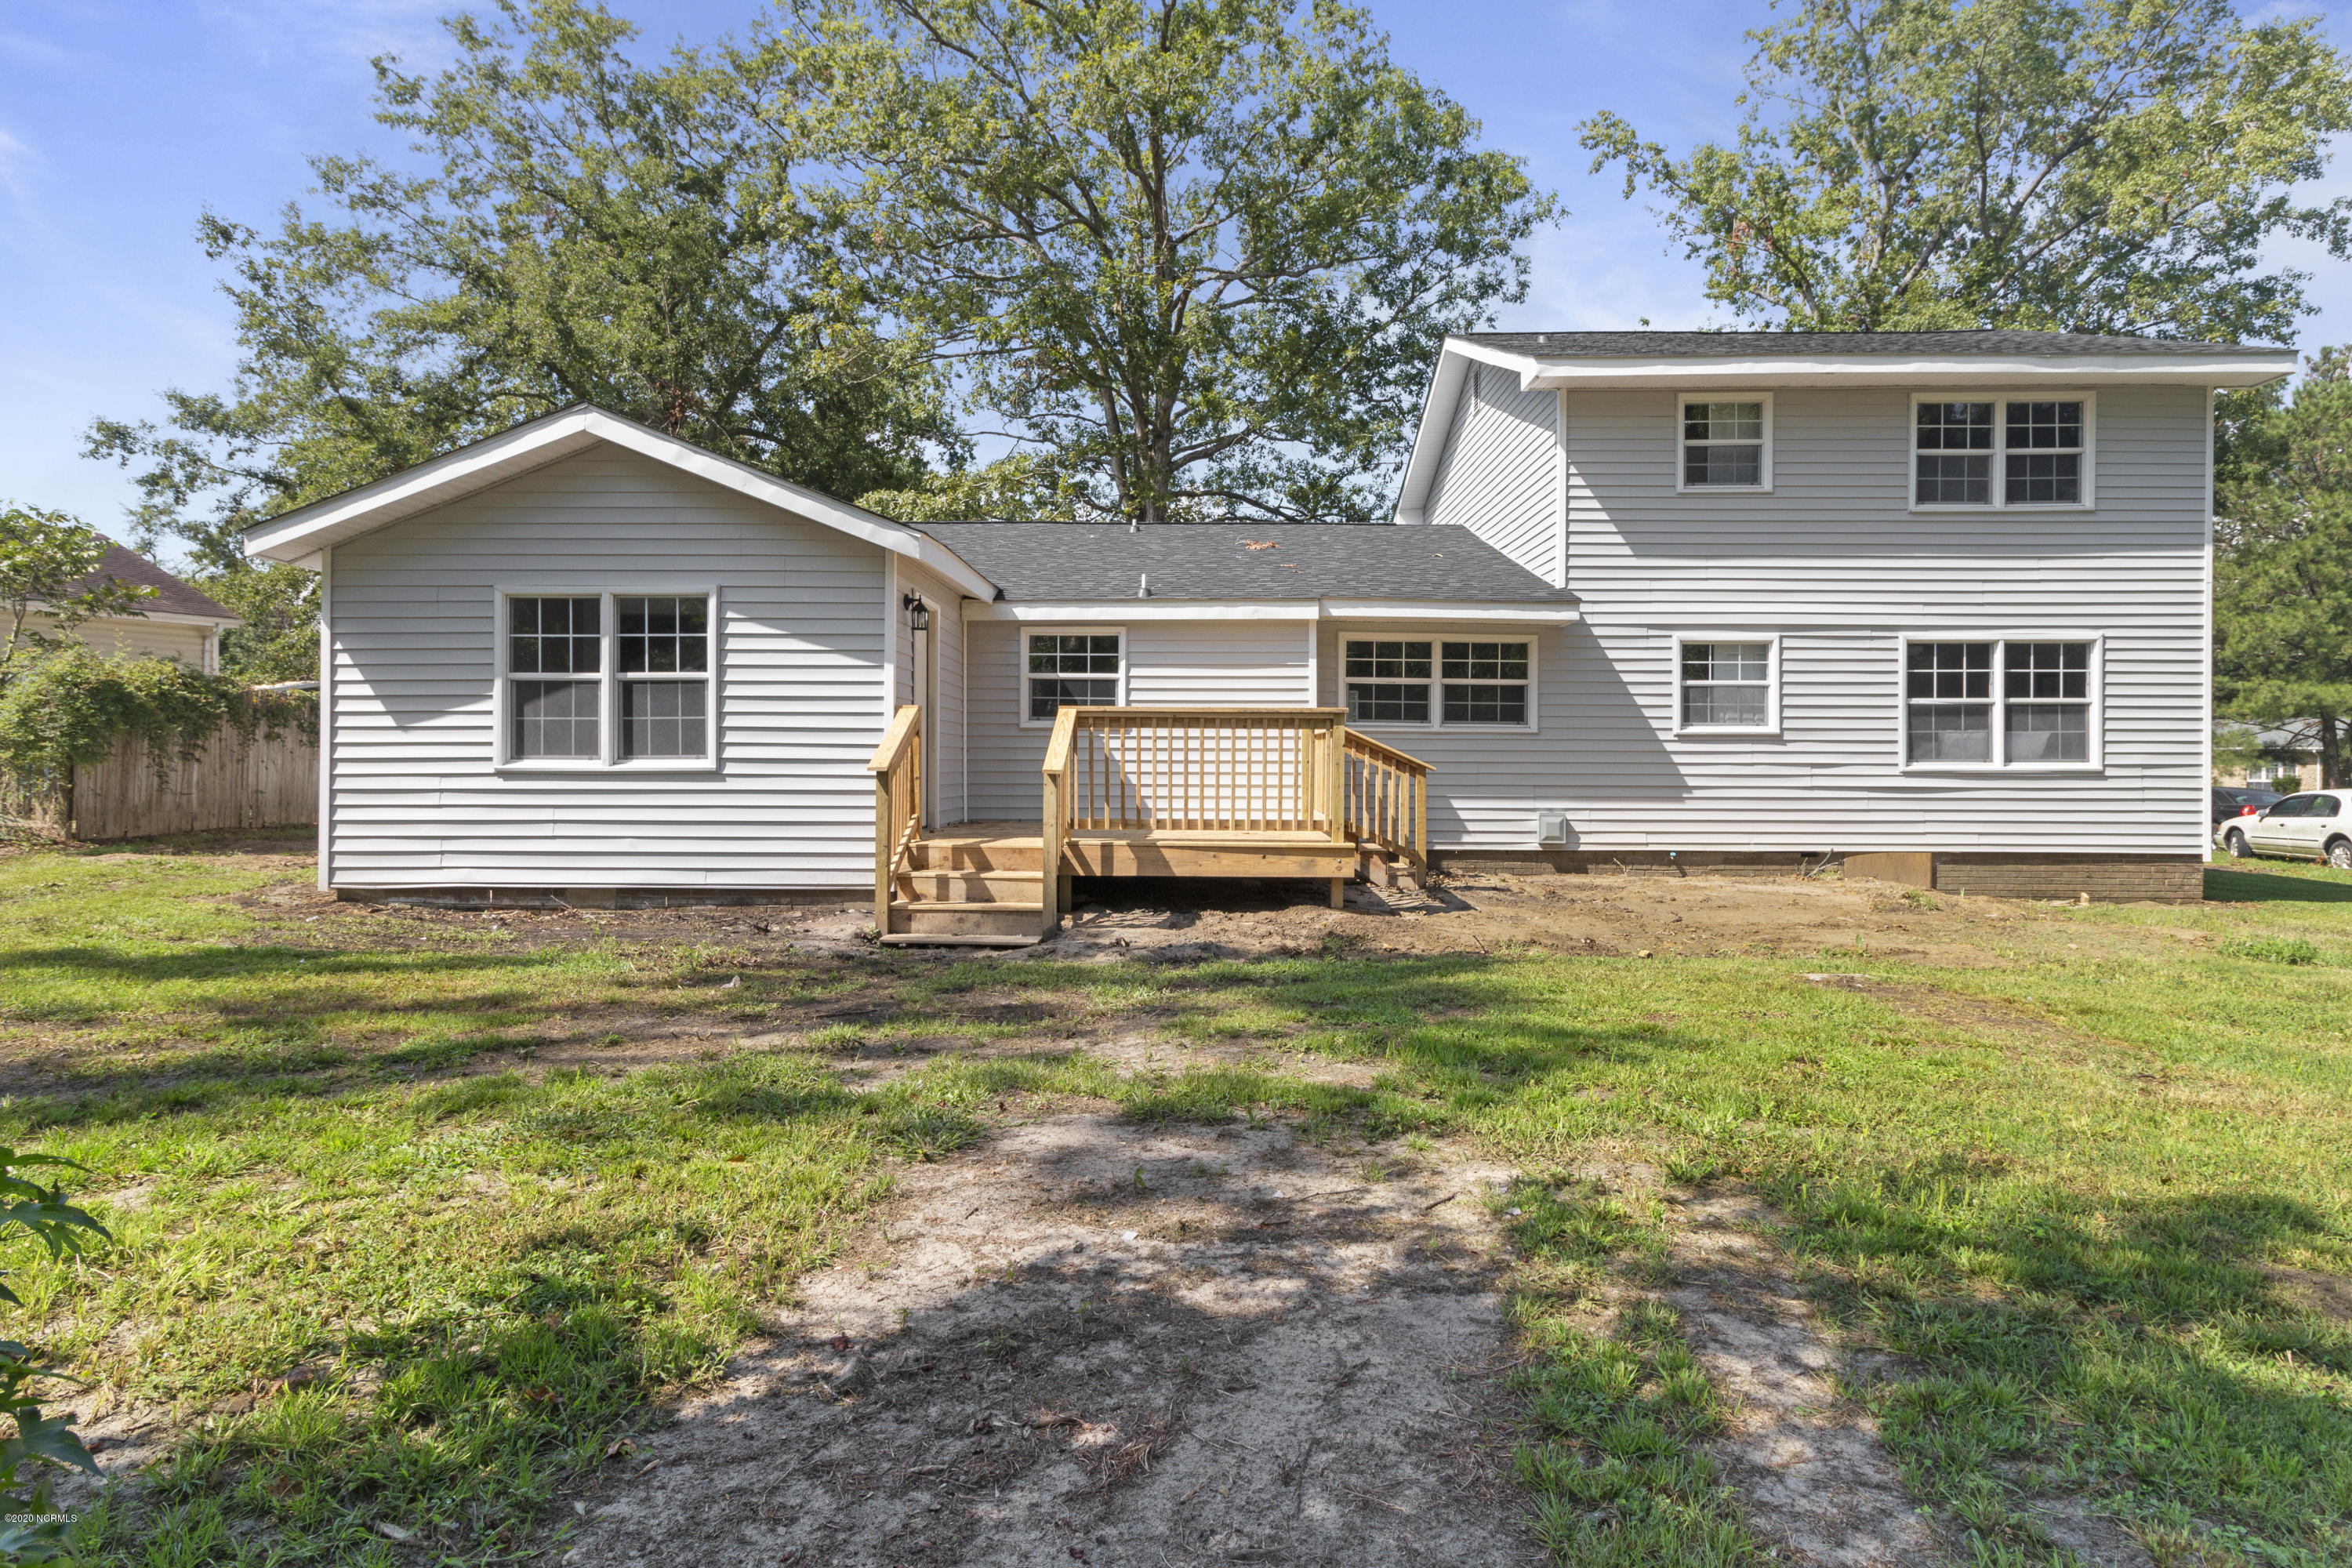 1002 Shirley Drive, Jacksonville, North Carolina 28540, 4 Bedrooms Bedrooms, ,3 BathroomsBathrooms,Residential,For Sale,Shirley,100231707